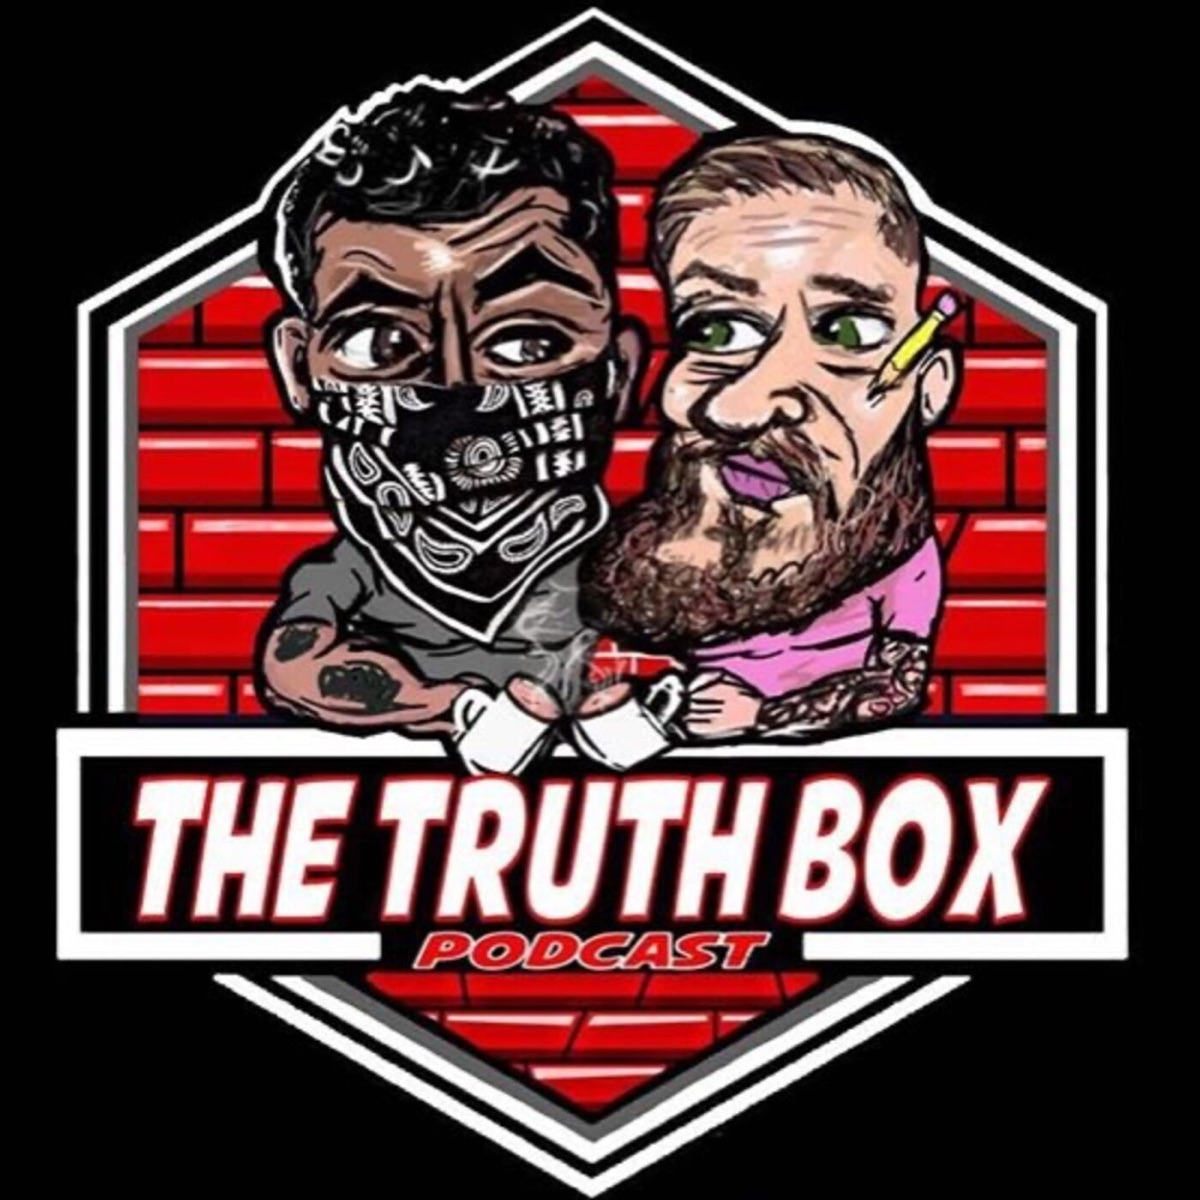 The Truth Box Podcast